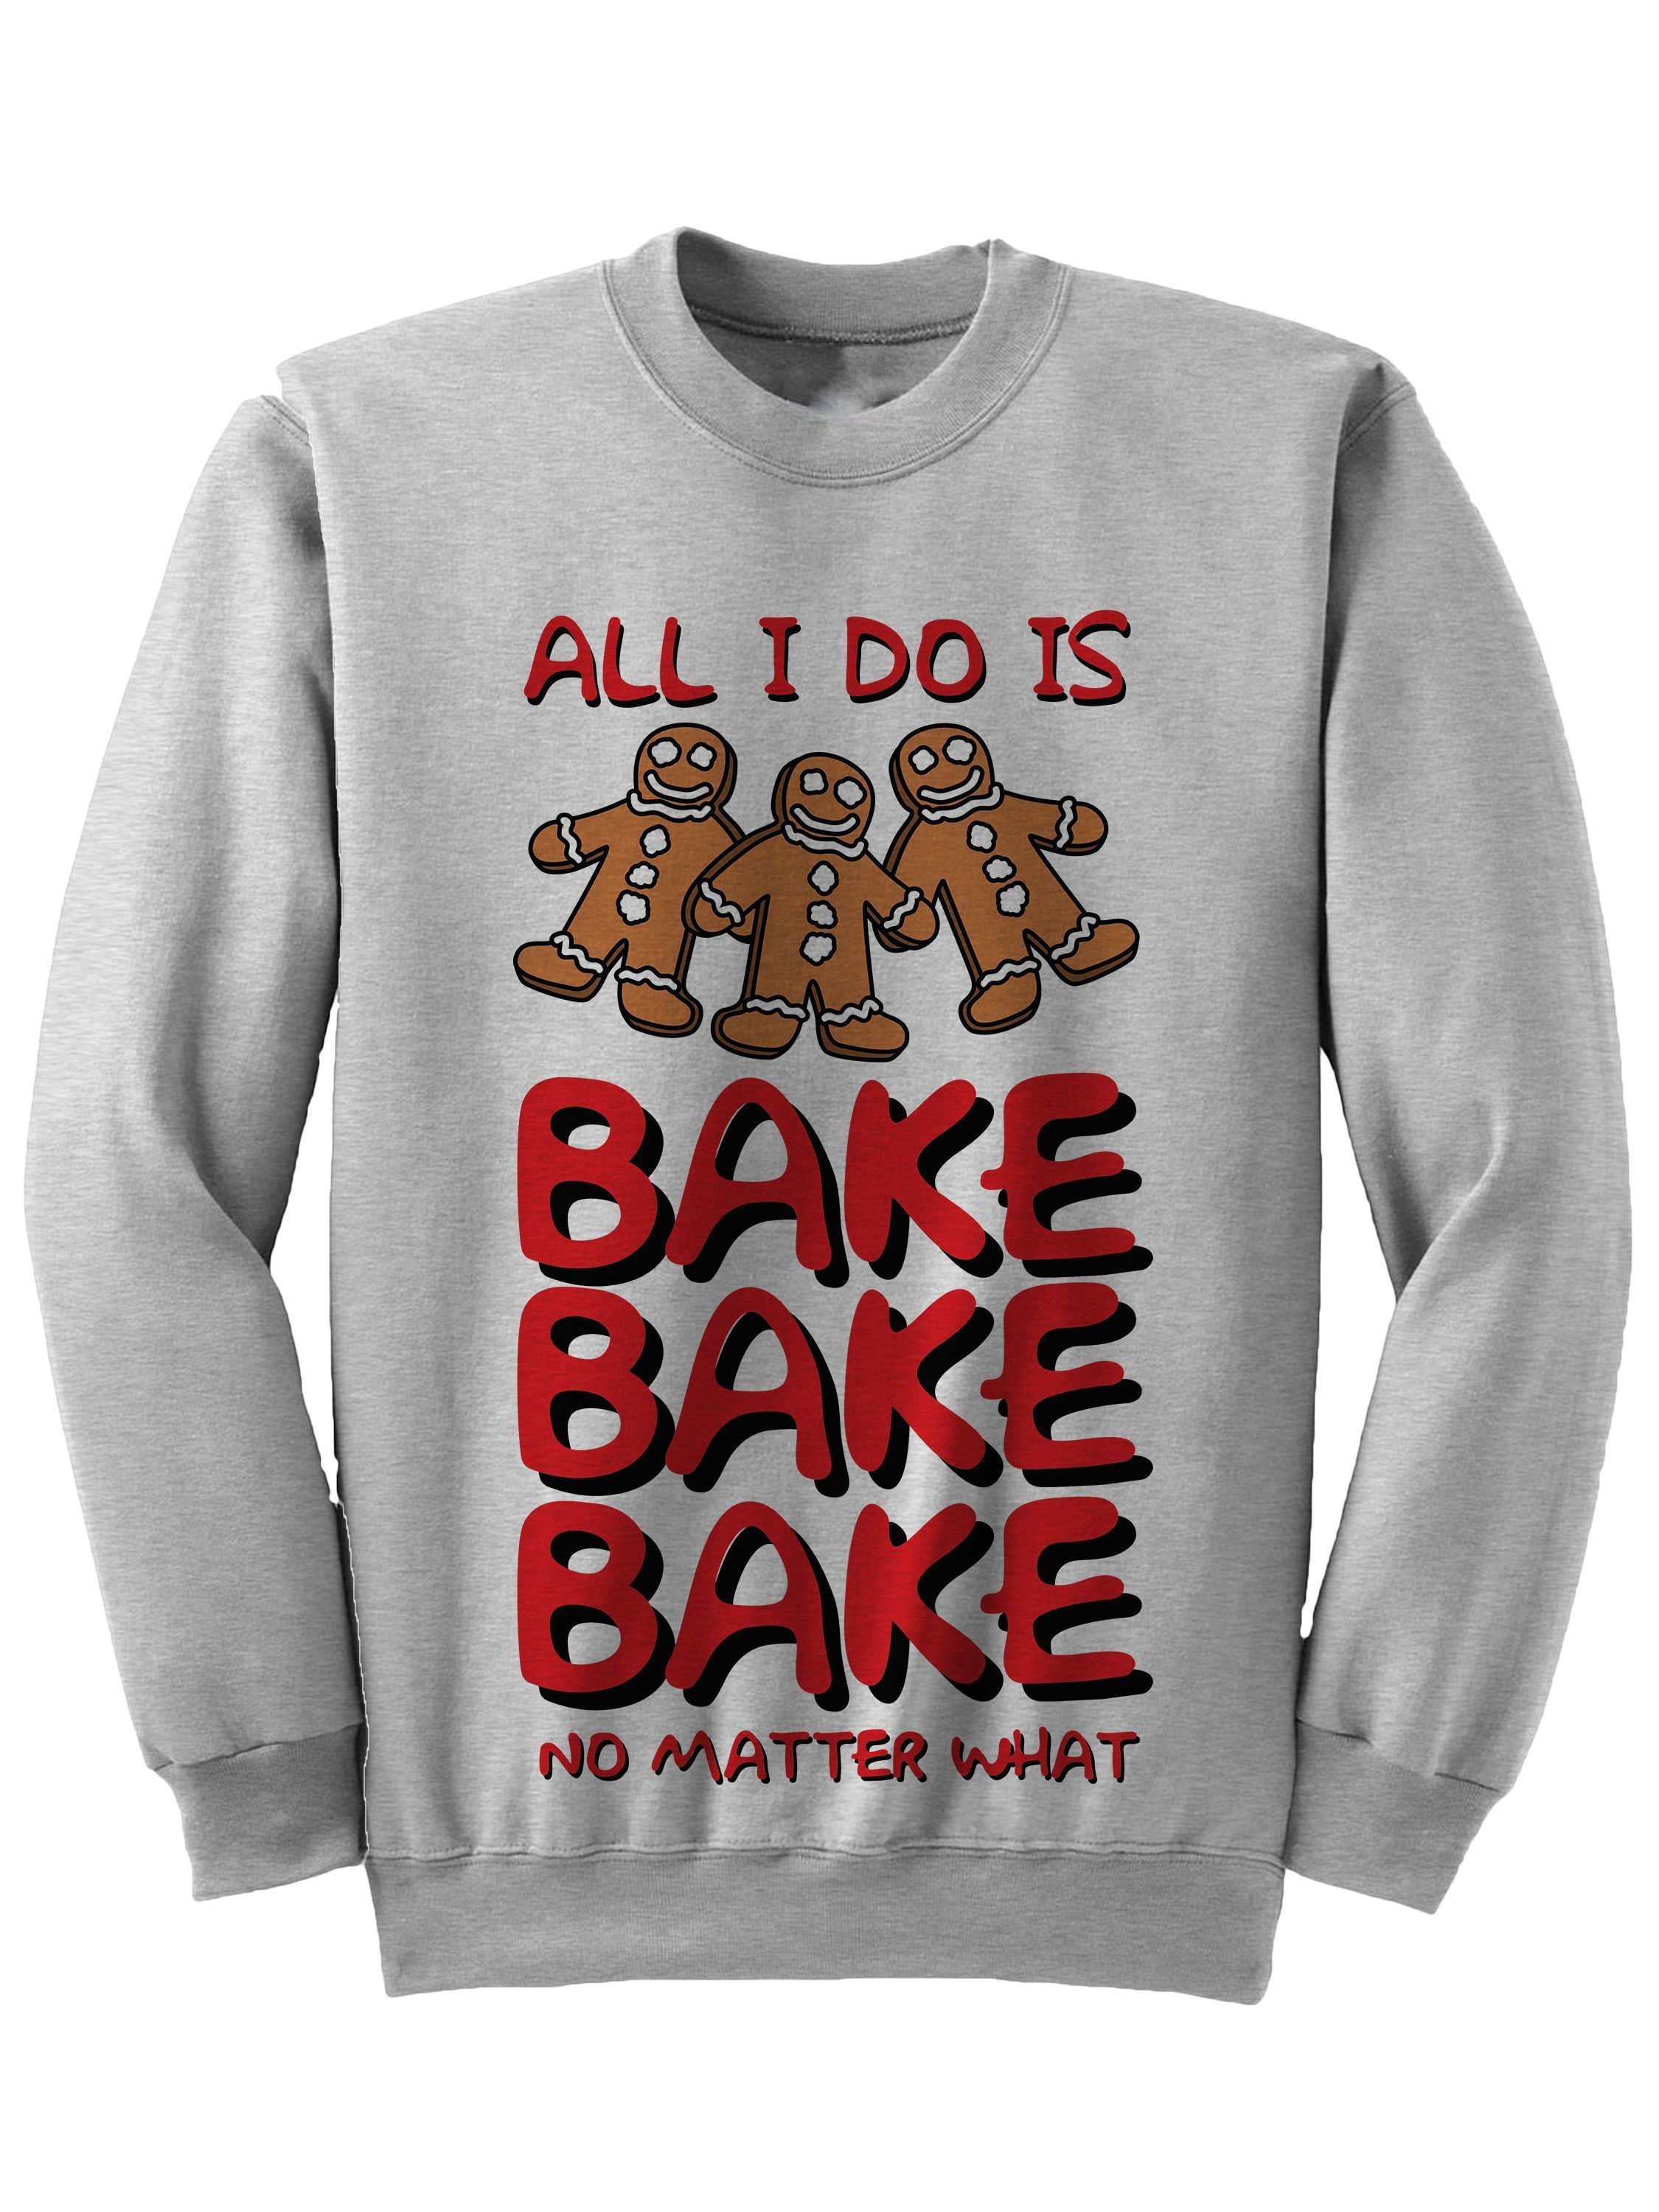 ALL I DO IS BAKE CHRISTMAS SWEATER FUNNY GIFT IDEAS LADIES